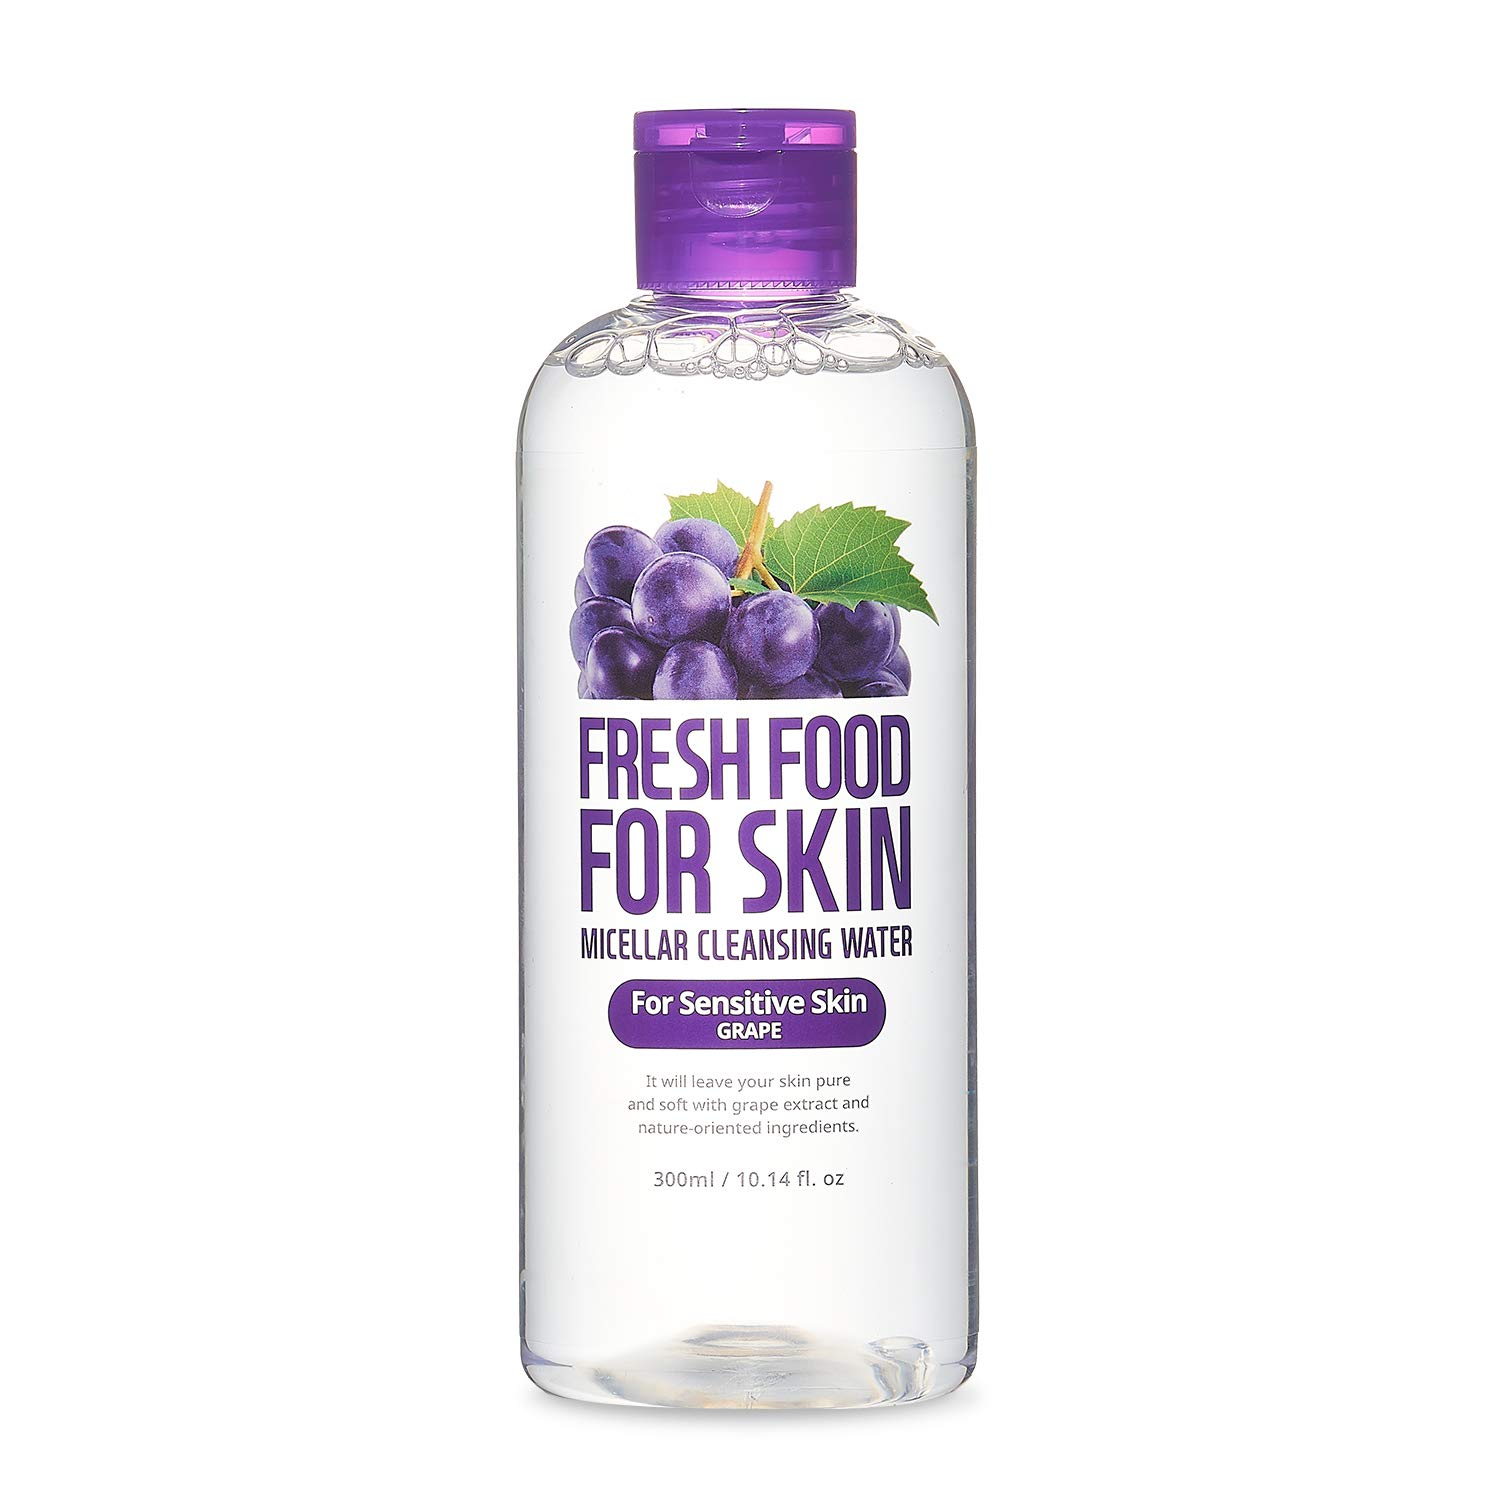 FARMSKIN Fresh Food For Skin Micellar Cleansing Water Face Cleansing Makeup Remover for Sensitive Skin Grape, 10.14 Fl Oz